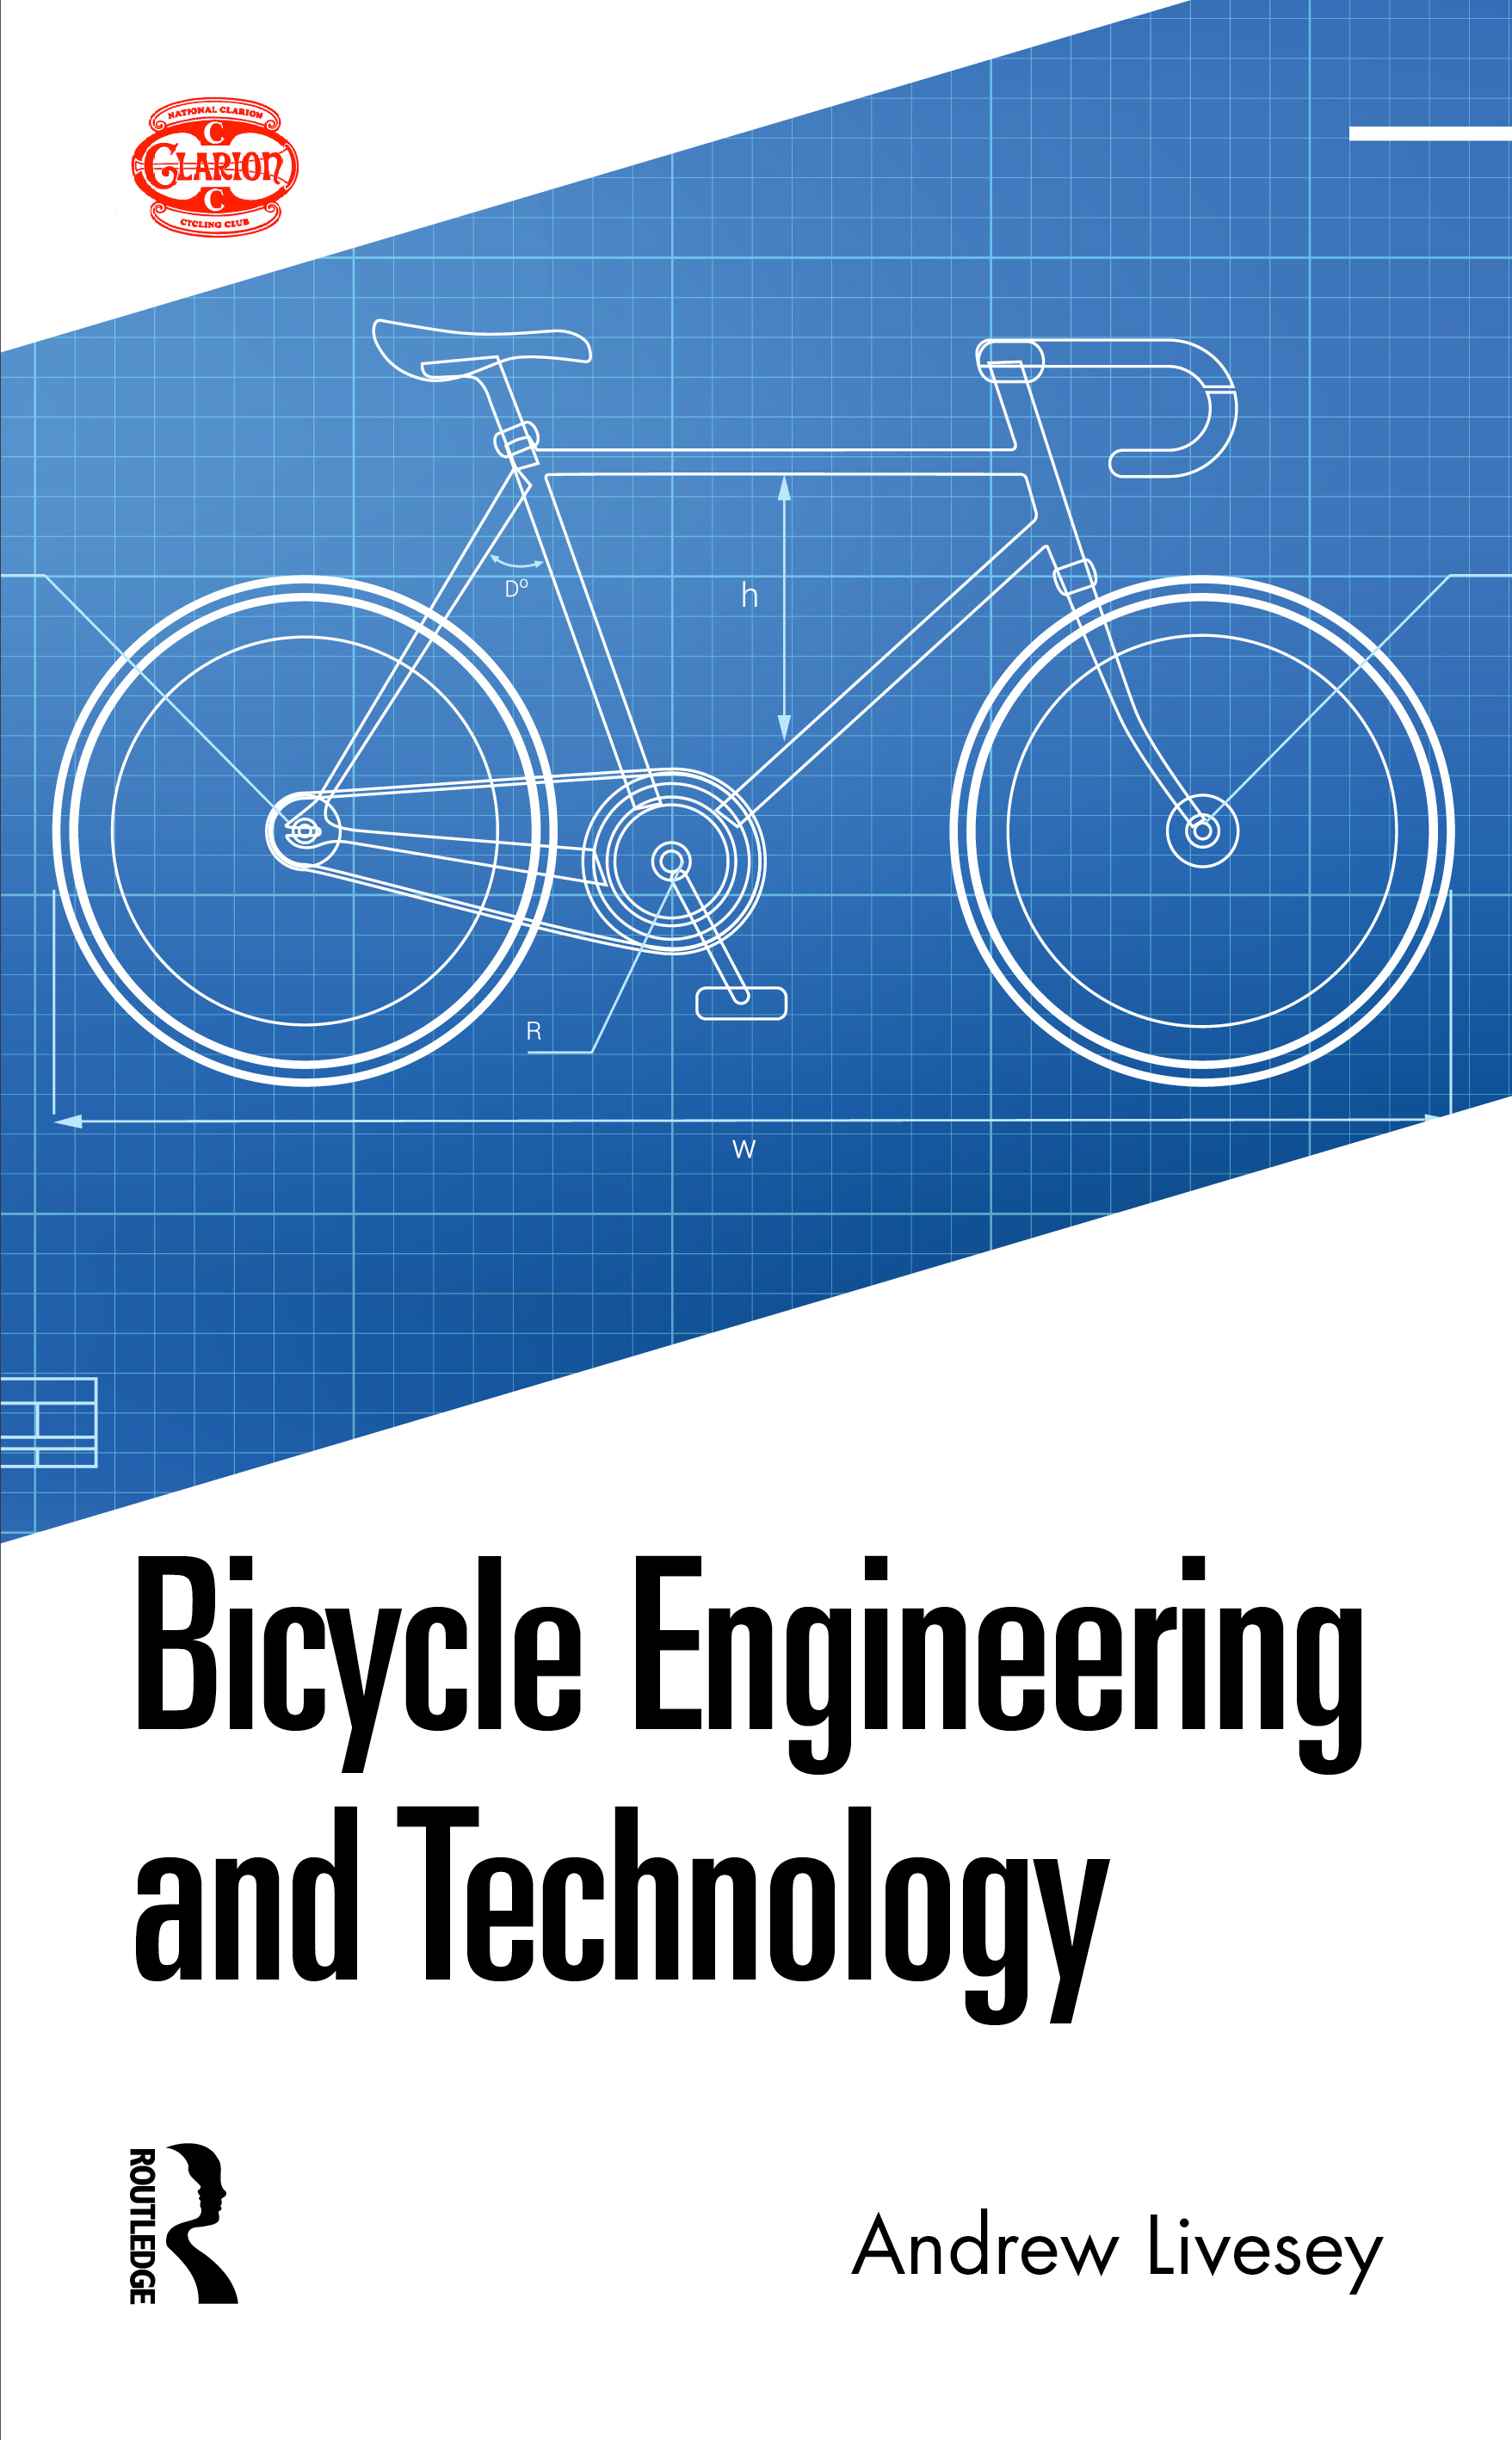 Bicycle Engineering and Technology